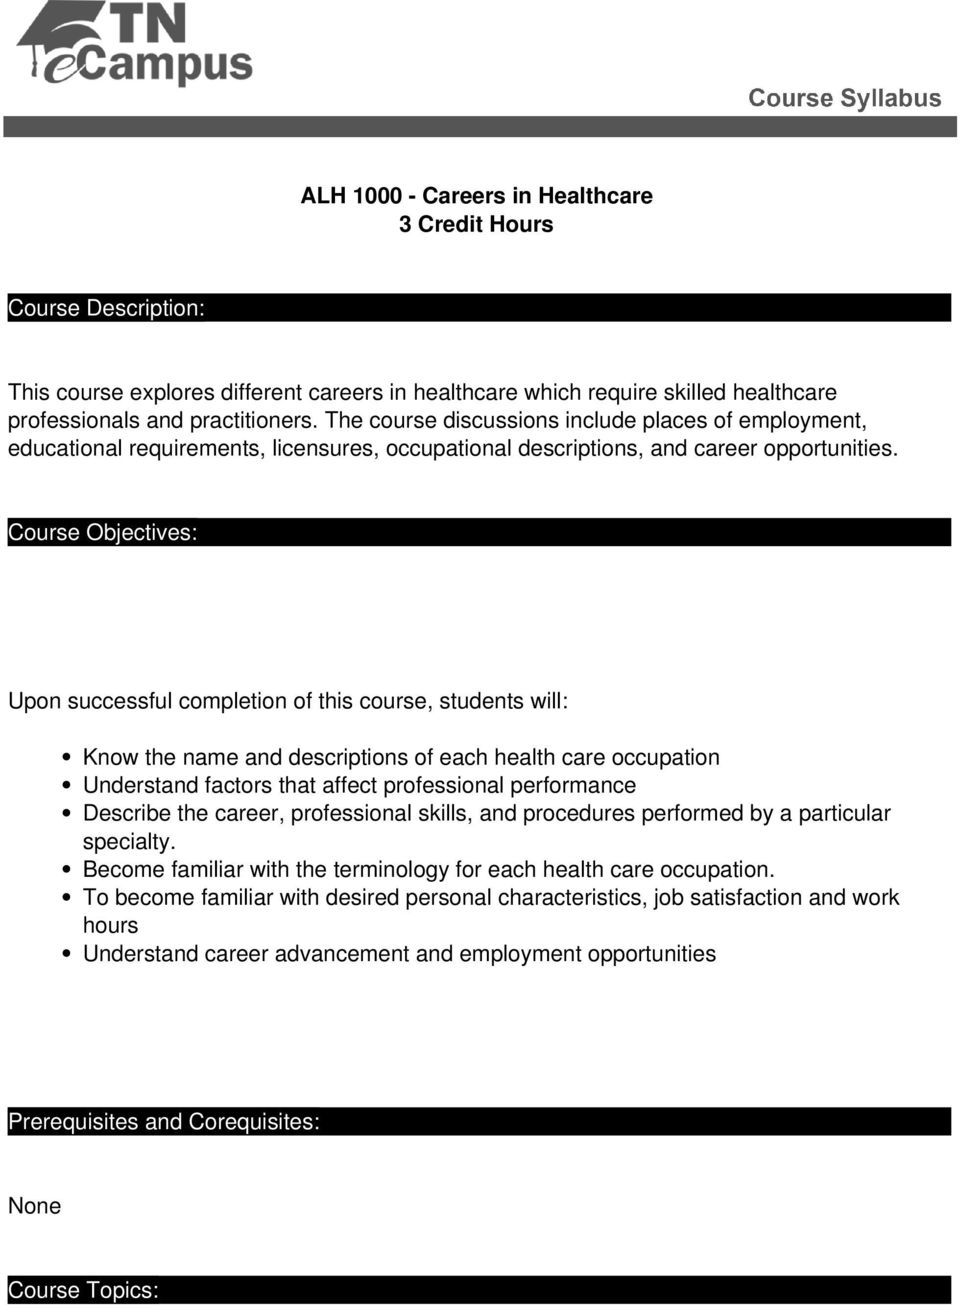 Course Objectives: Upon successful completion of this course, students will: Know the name and descriptions of each health care occupation Understand factors that affect professional performance